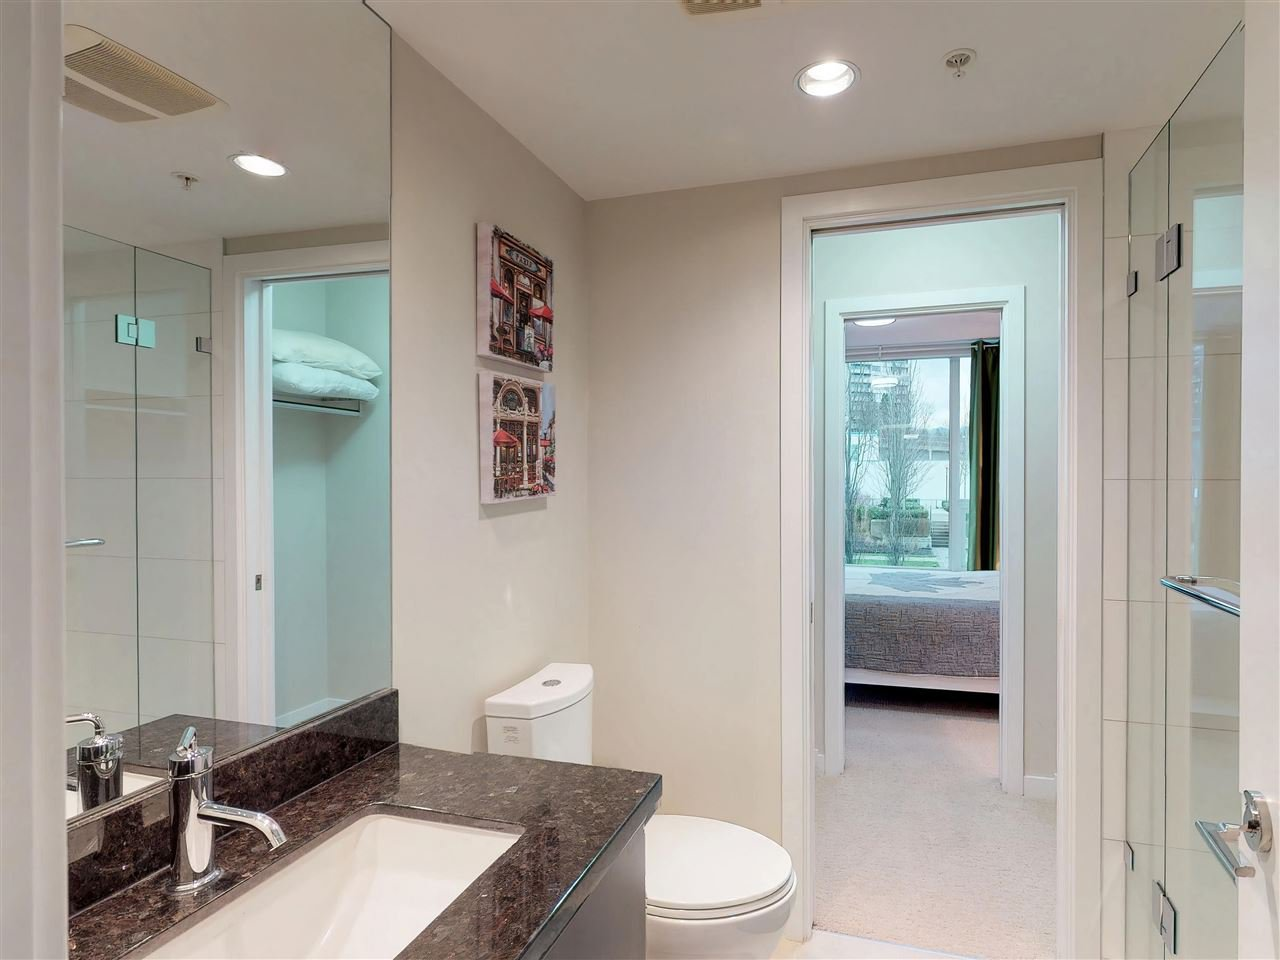 Photo 18: Photos: 405 2232 DOUGLAS ROAD in Burnaby: Brentwood Park Condo for sale (Burnaby North)  : MLS®# R2347040